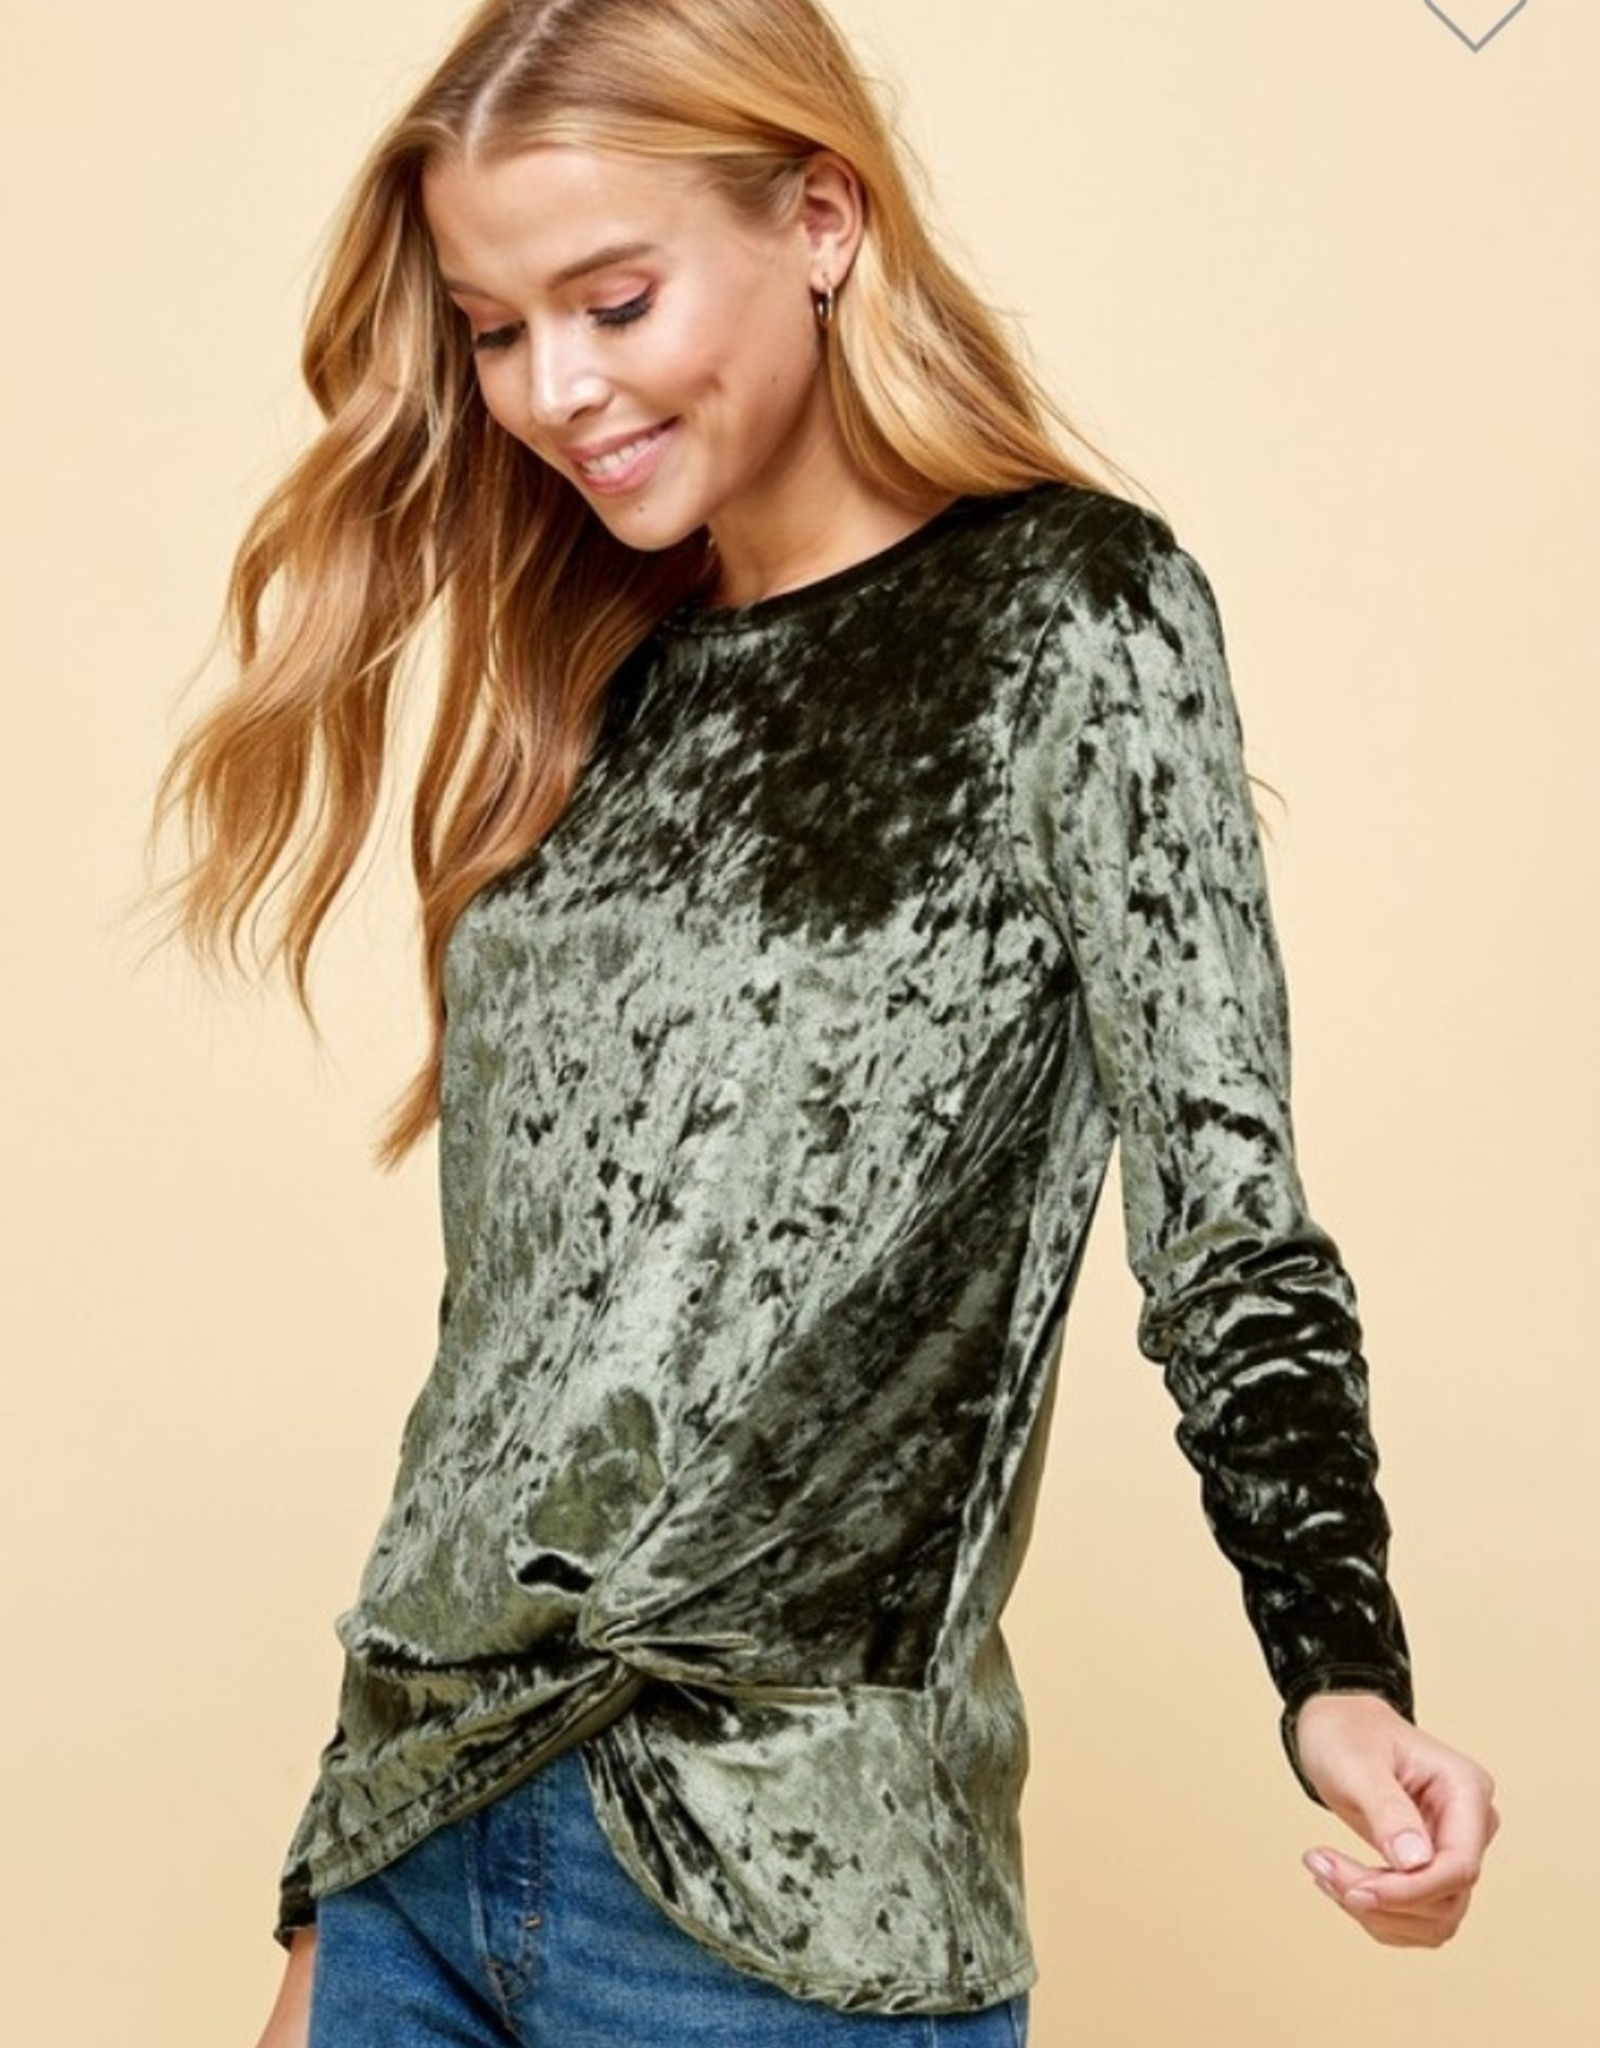 Les Amis velvet top with  crisscross in front